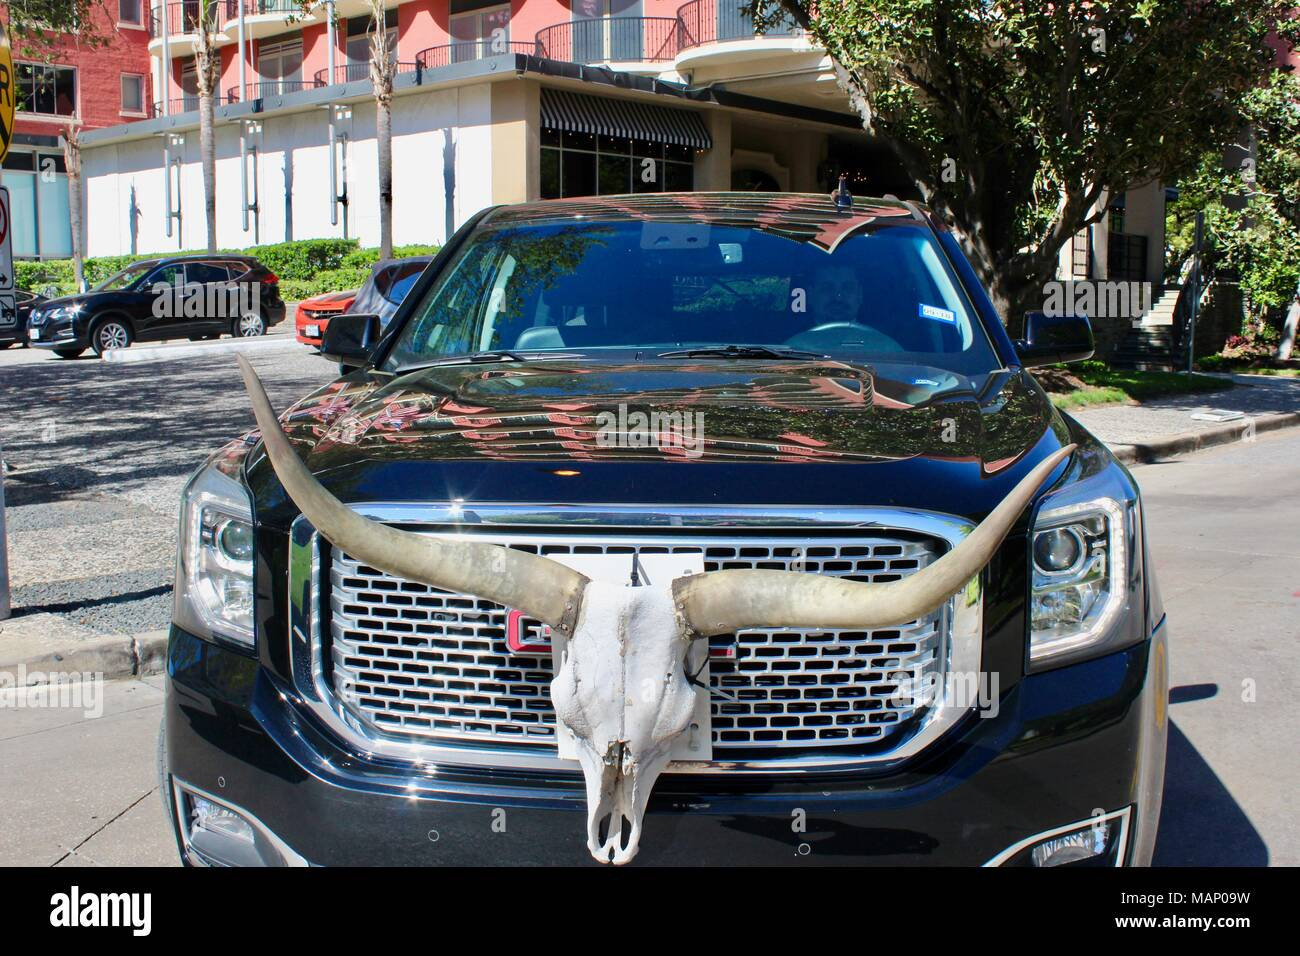 longhorn cow skull adornment on the front grill of a GMC black car in houston texas USA - Stock Image